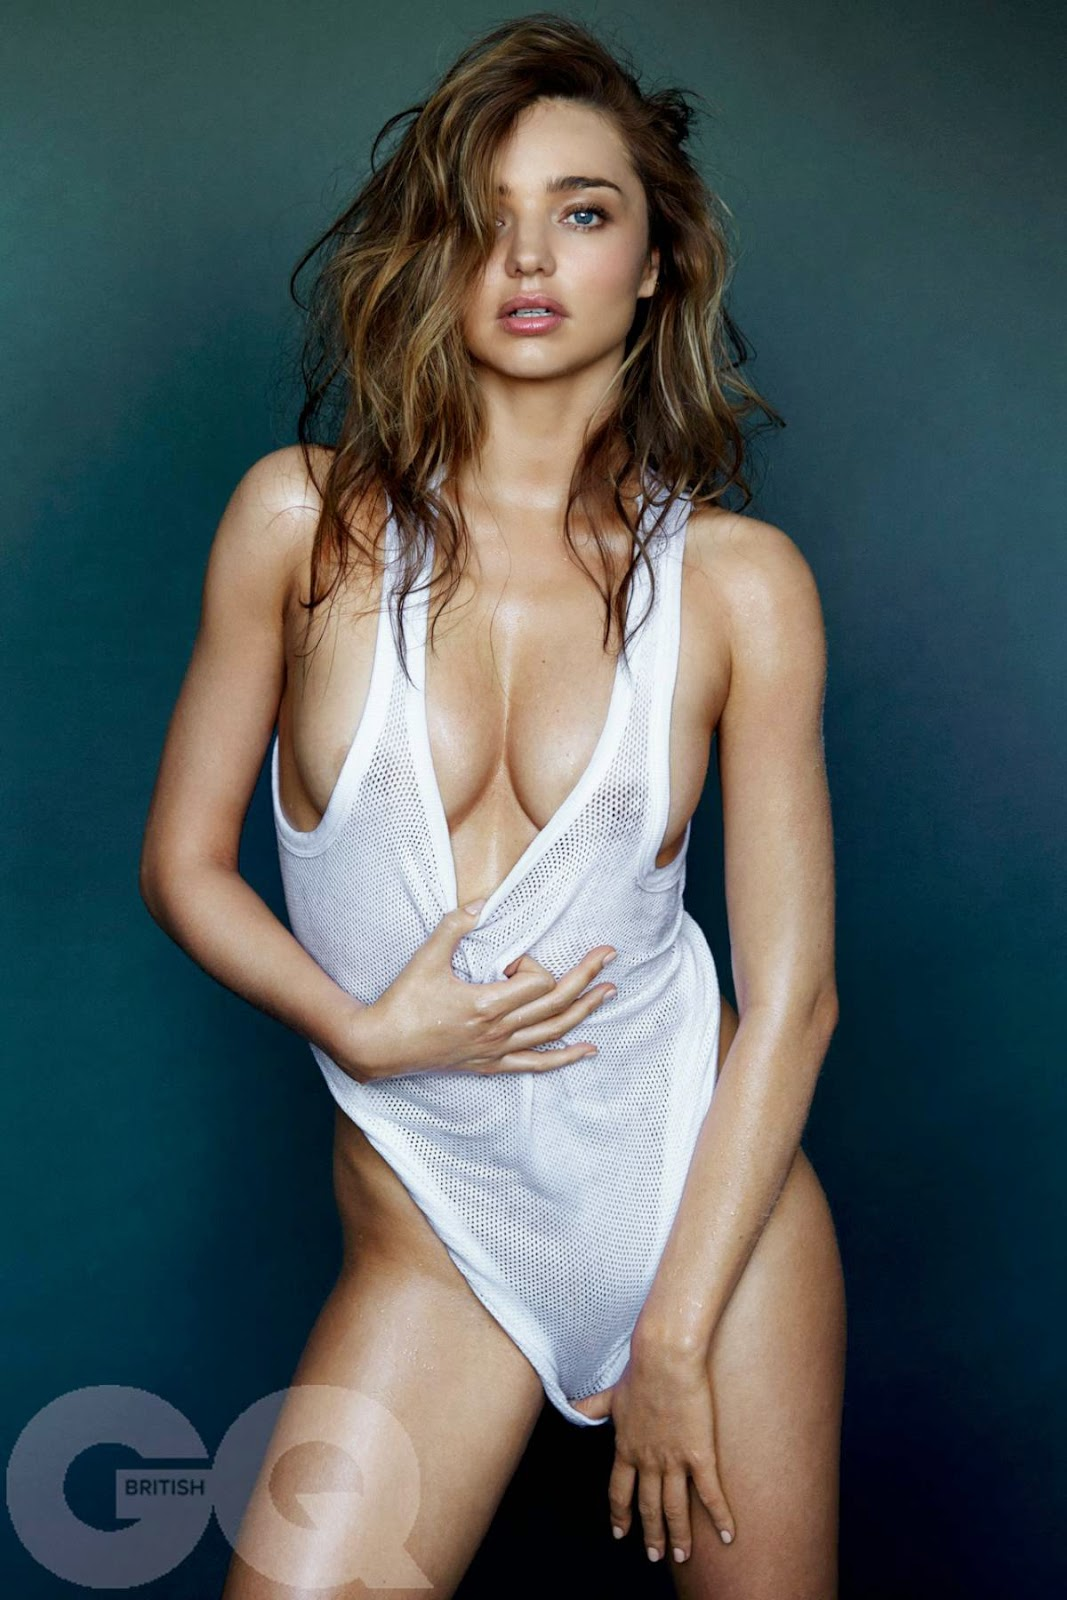 Miranda Kerr wet t-shirt in GQ UK Magazine Naked Photoshoot (May 2014)